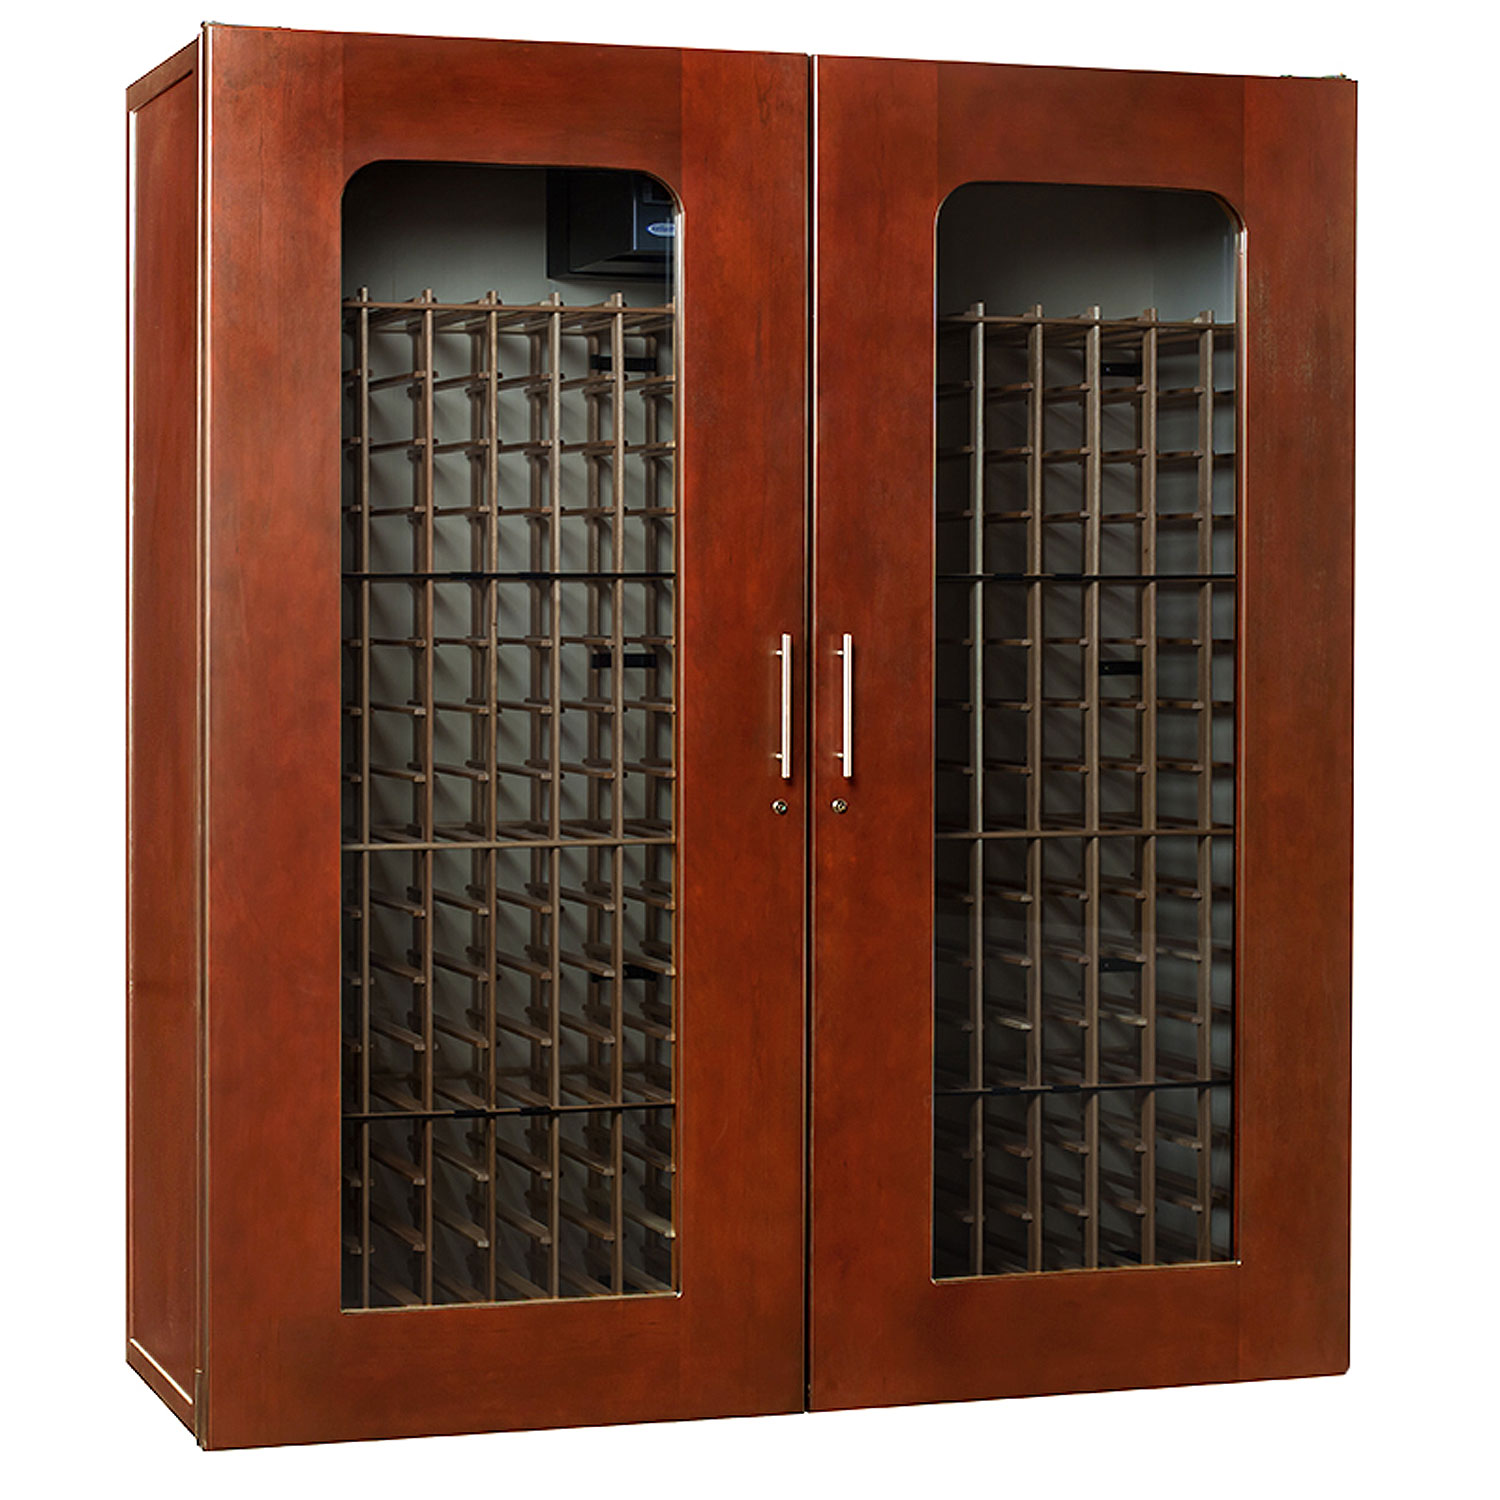 le cache 5200 premium wine cellar cabinet classic cherry finish. Black Bedroom Furniture Sets. Home Design Ideas